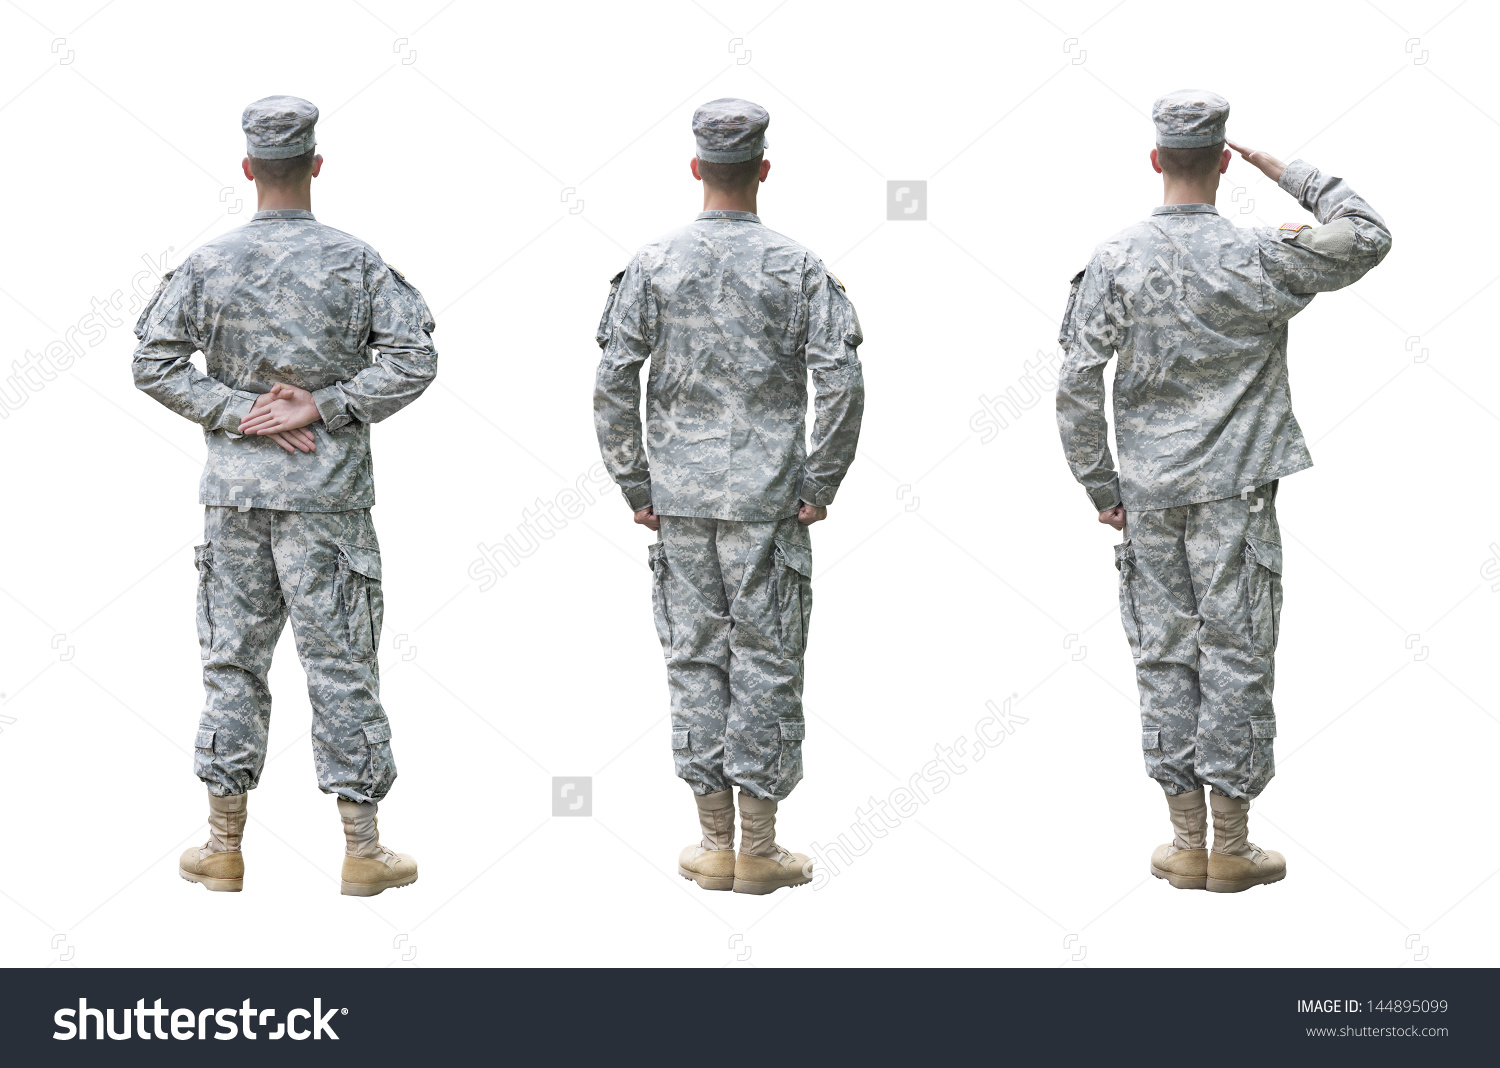 Us Army Soldier Three Positions Parade Stock Photo 144895099.